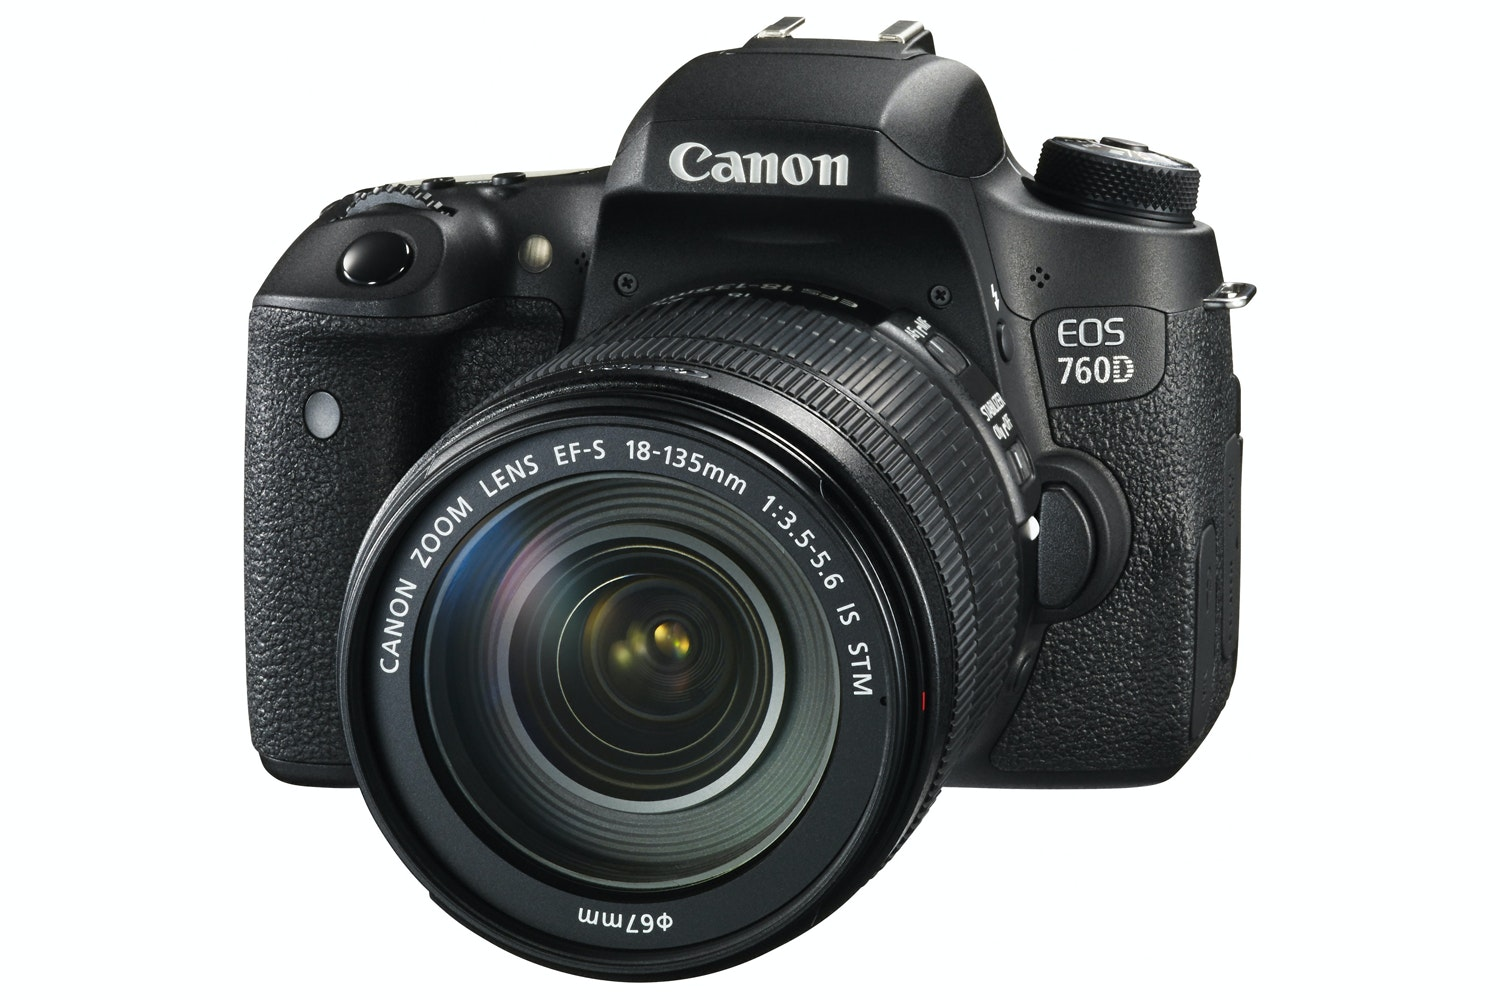 Canon EOS 760D & 18-135mm IS STM Lens